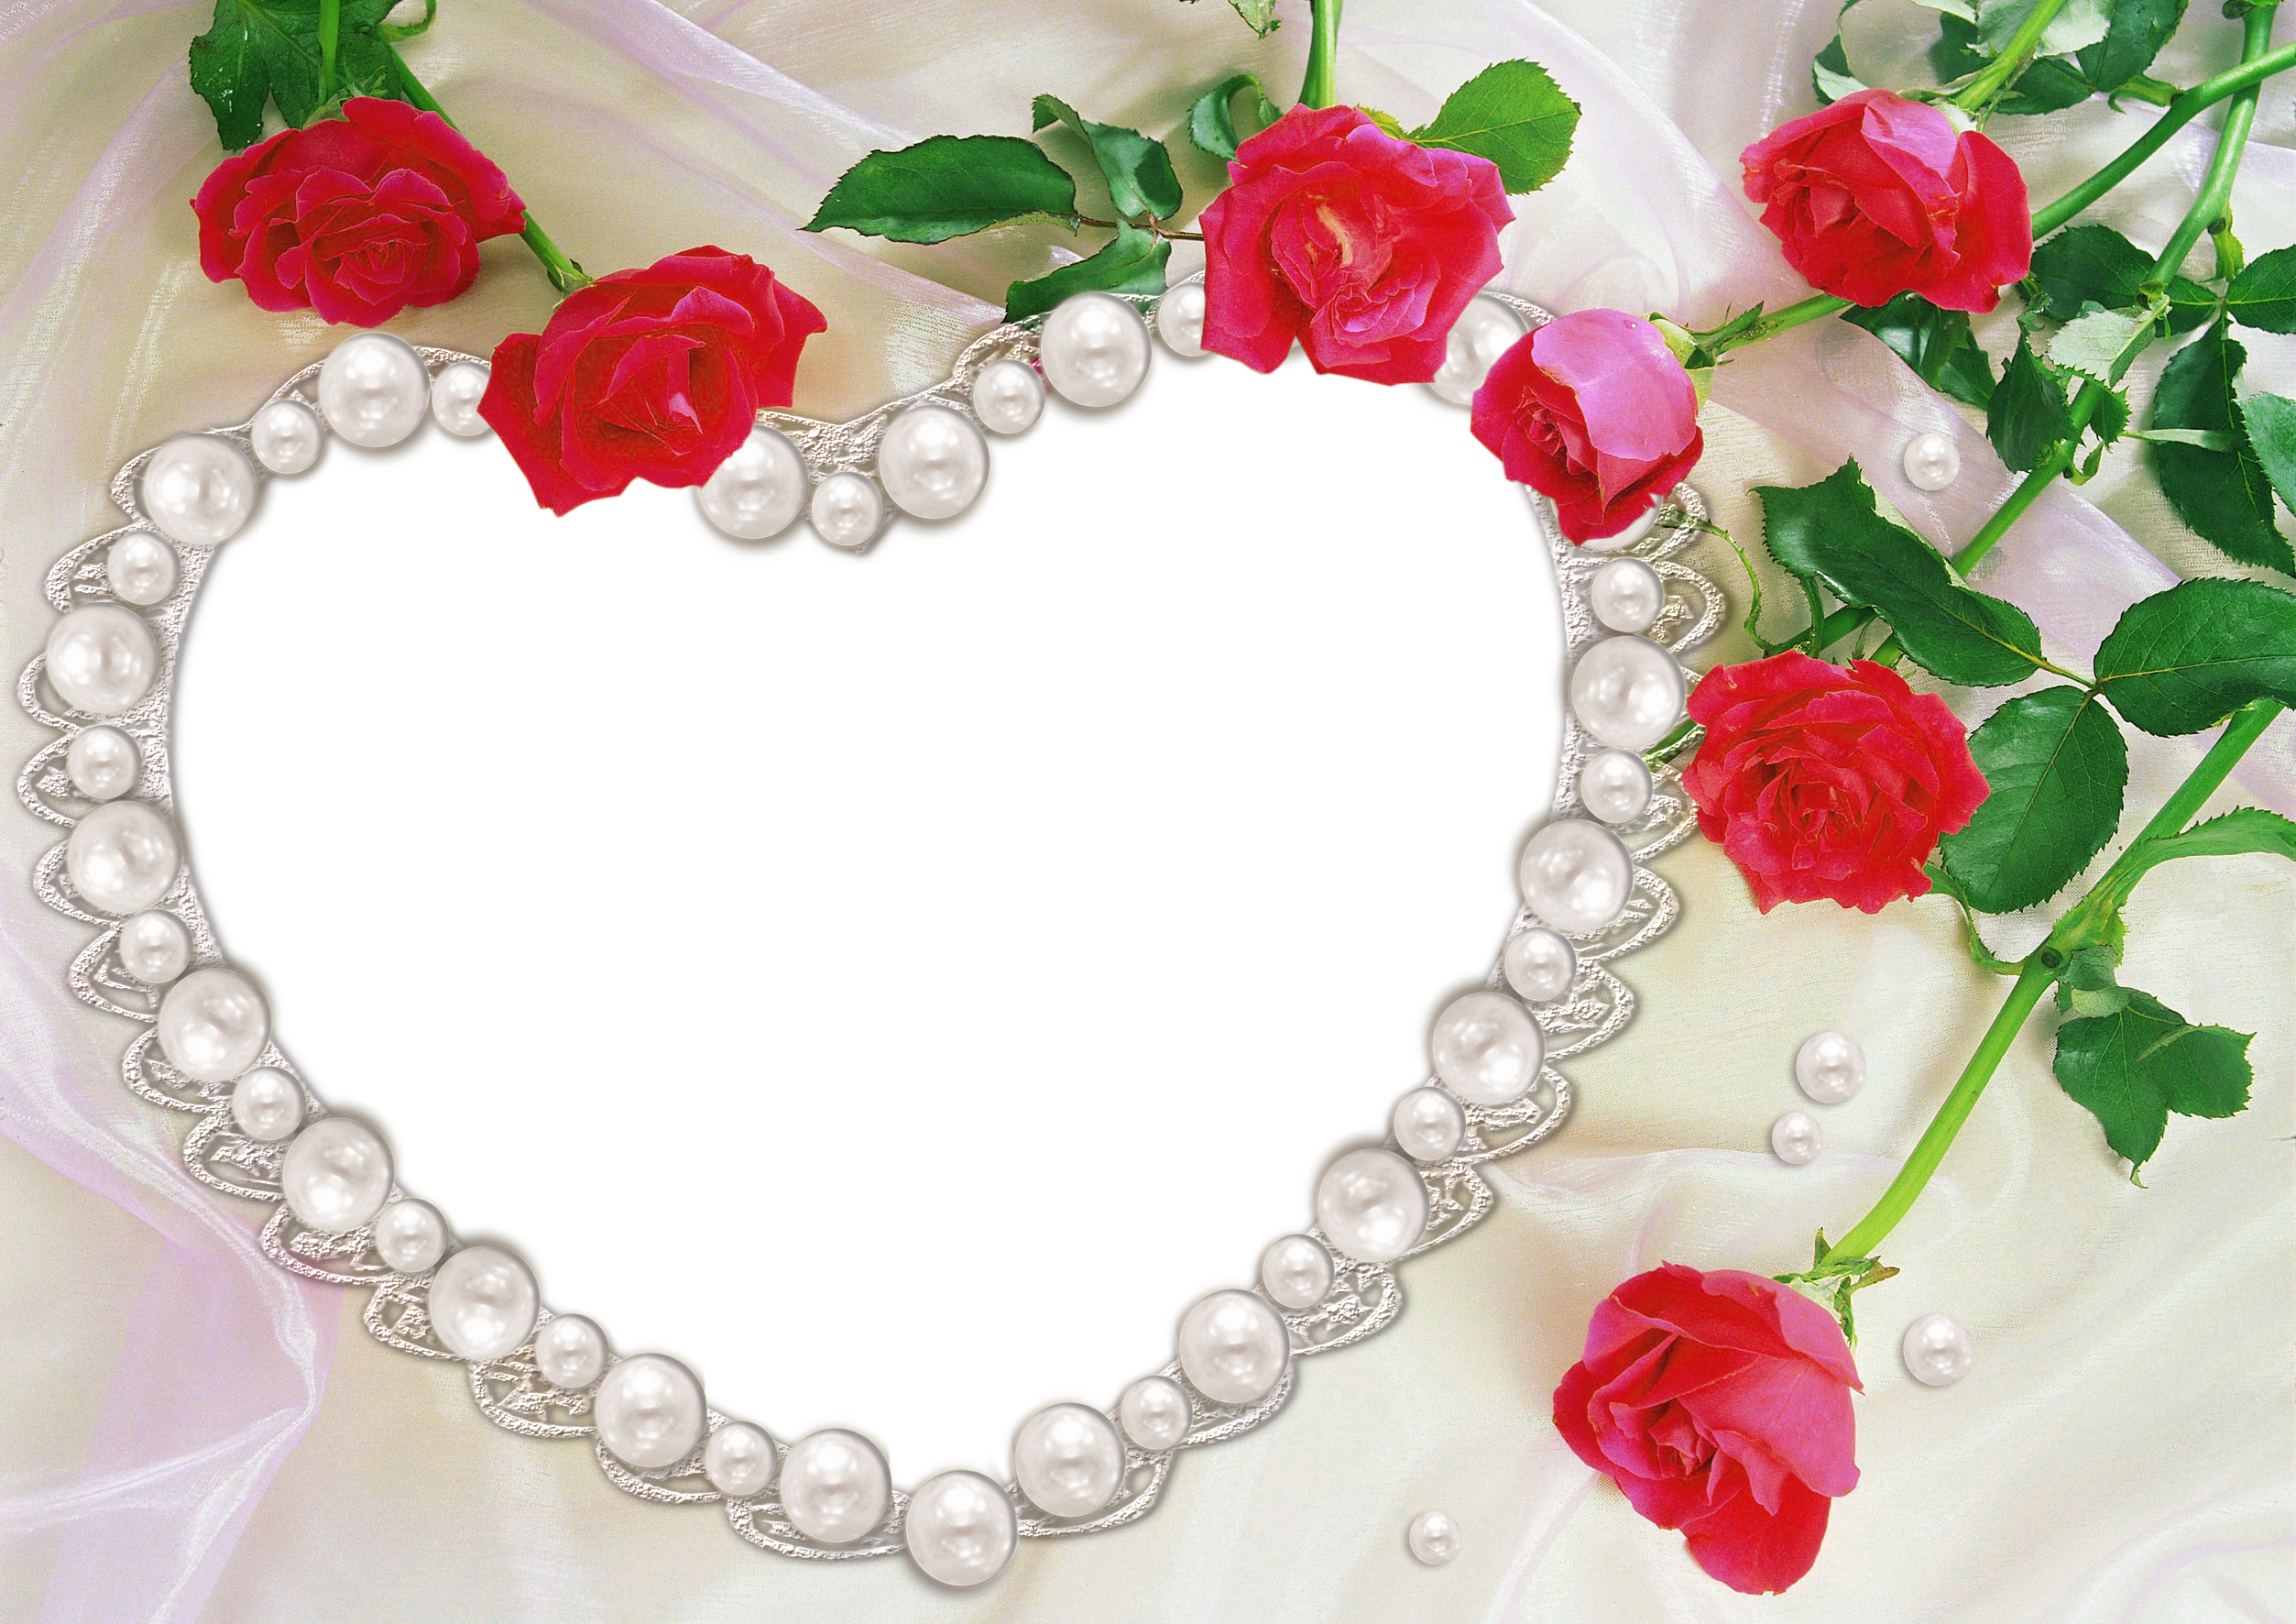 Artificial heart clipart banner royalty free library Pearl Heart and Roses Transparent Frame | Gallery Yopriceville ... banner royalty free library